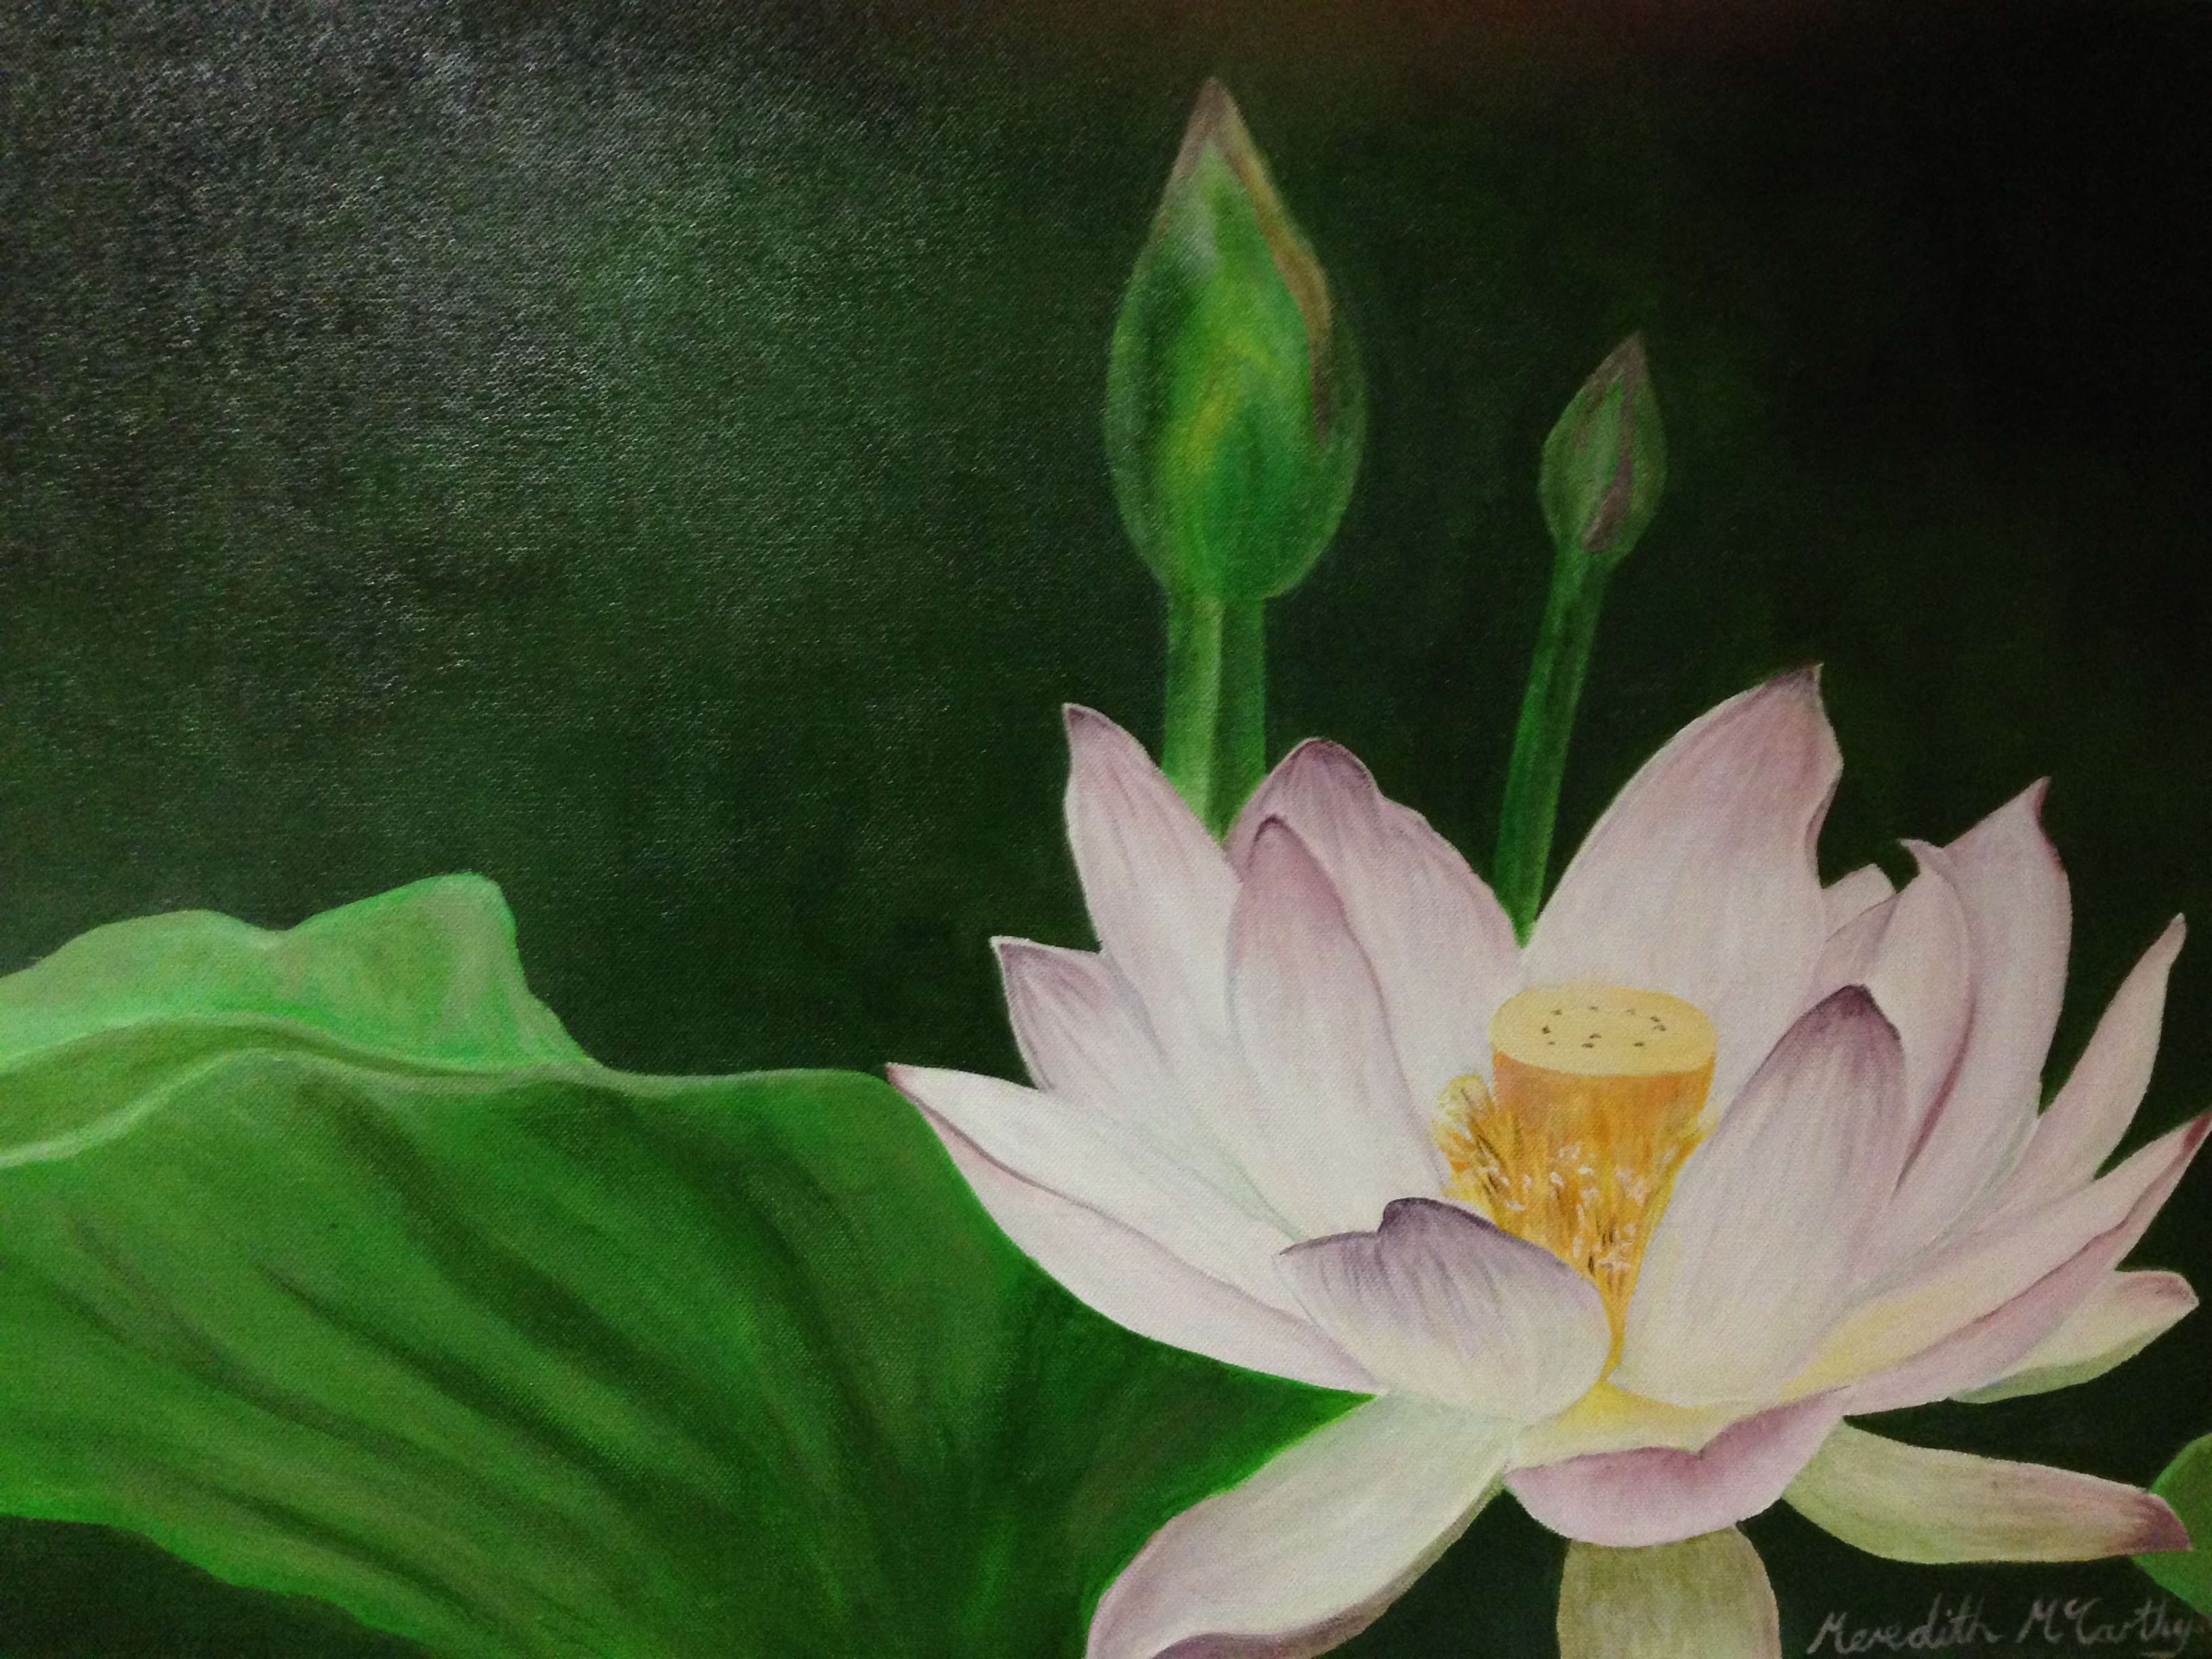 Lotus of enlightenment